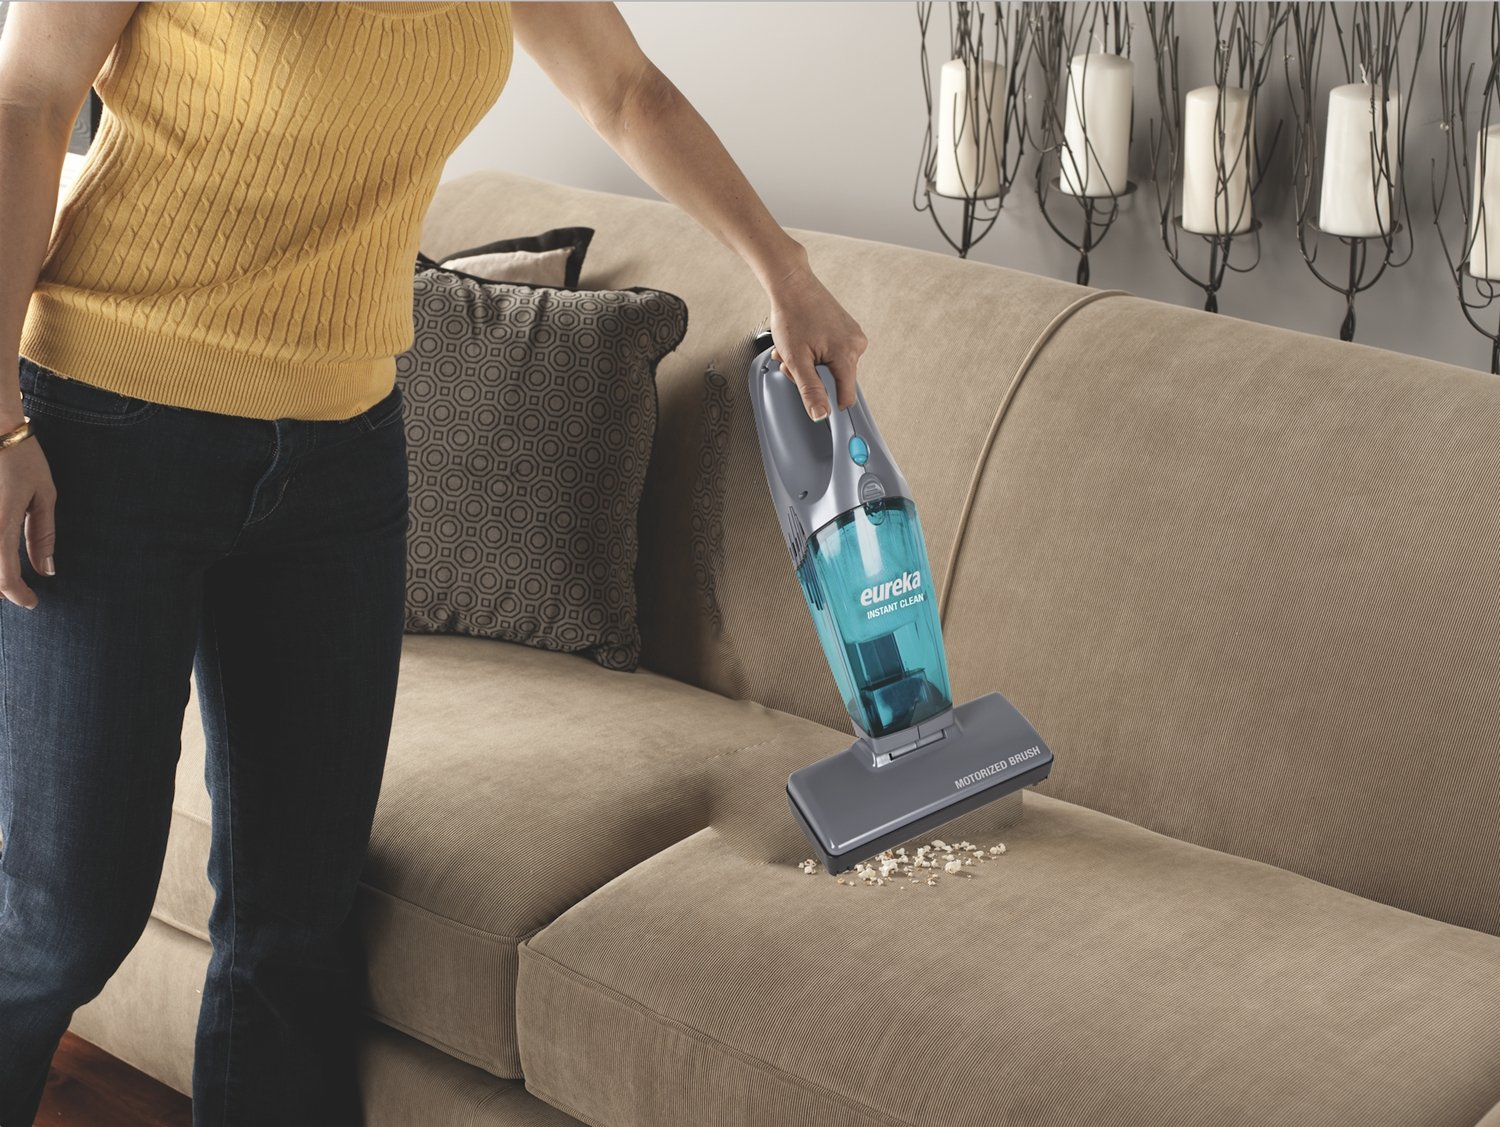 Eureka 2-in-1 Stick & Hand Vacuum, Lightweight Rechargeable Cordless Vacuum Cleaner,Instant Clean 95A by Eureka (Image #5)